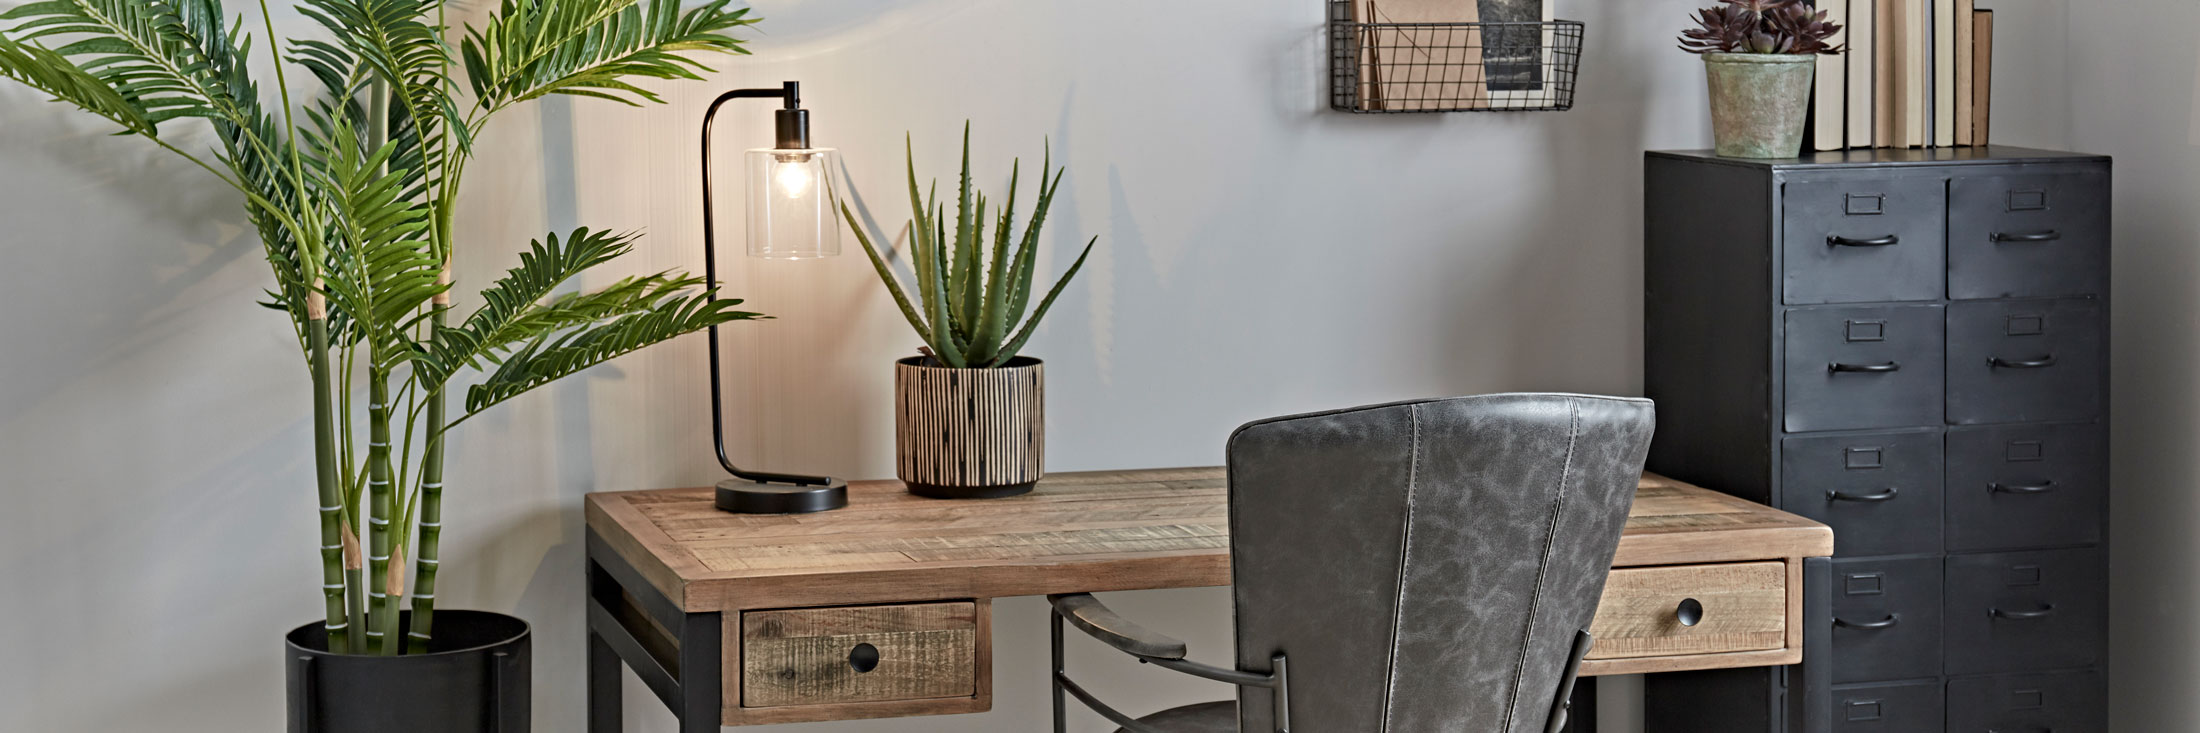 coxandcox.co.uk - Furniture and Decor starting at just £55